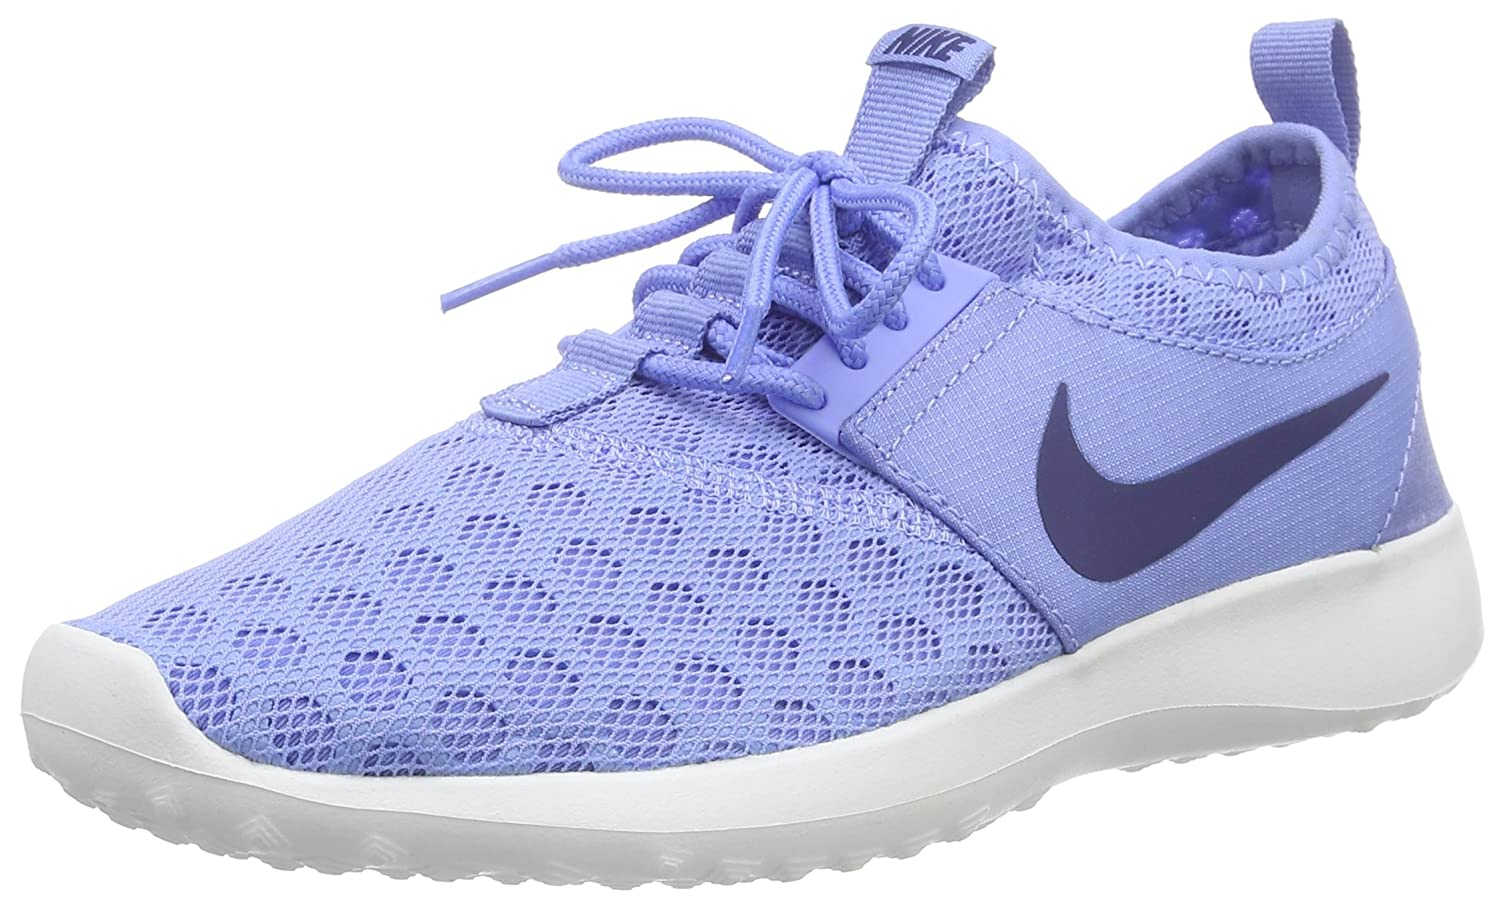 38f0267b907d9 NIKE Women's Juvenate Running Shoe B00XZLFSBW 5.5 B(M) US|Chalk Blue ...